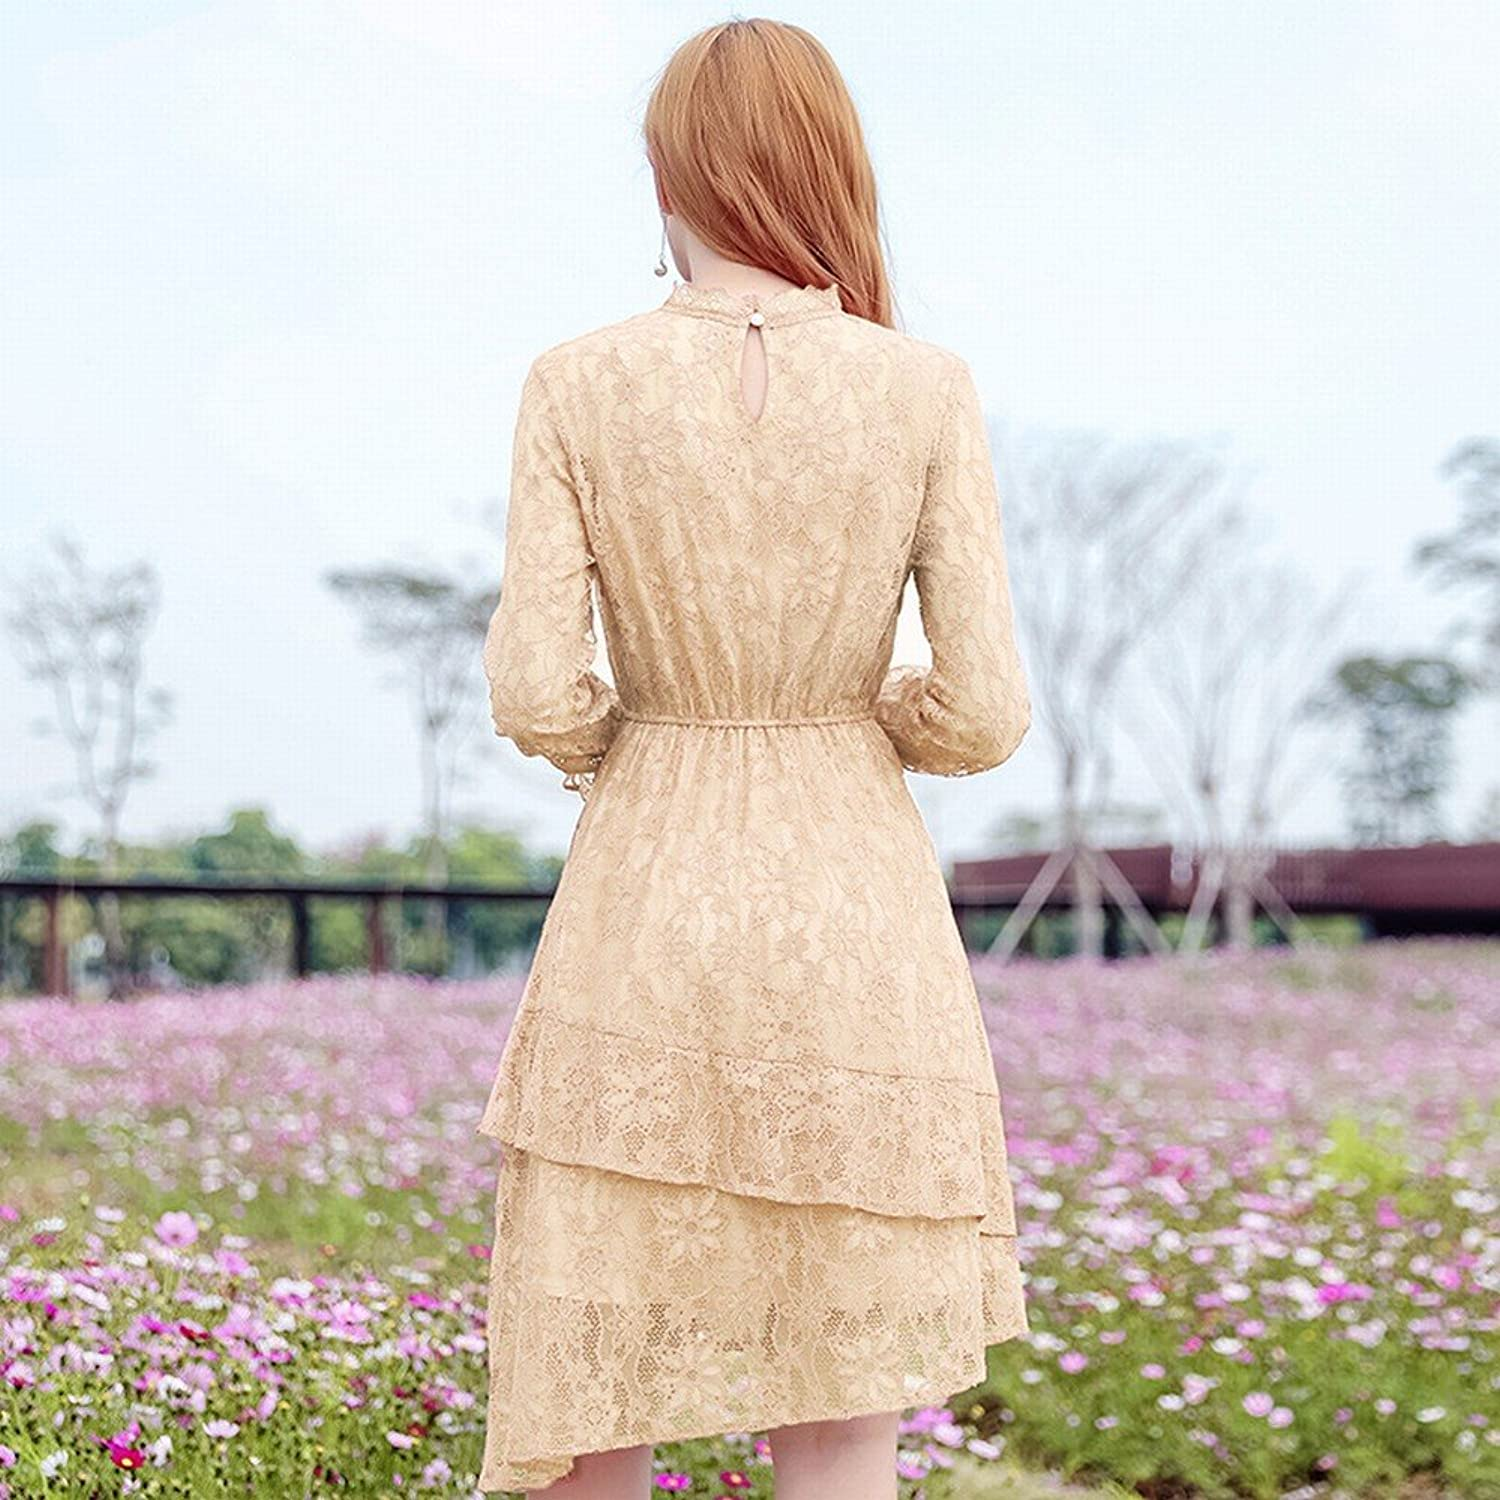 DEED Spring Lace Boutique Dress Round Neck Flounced in The Long Section Slim Waist Skirt